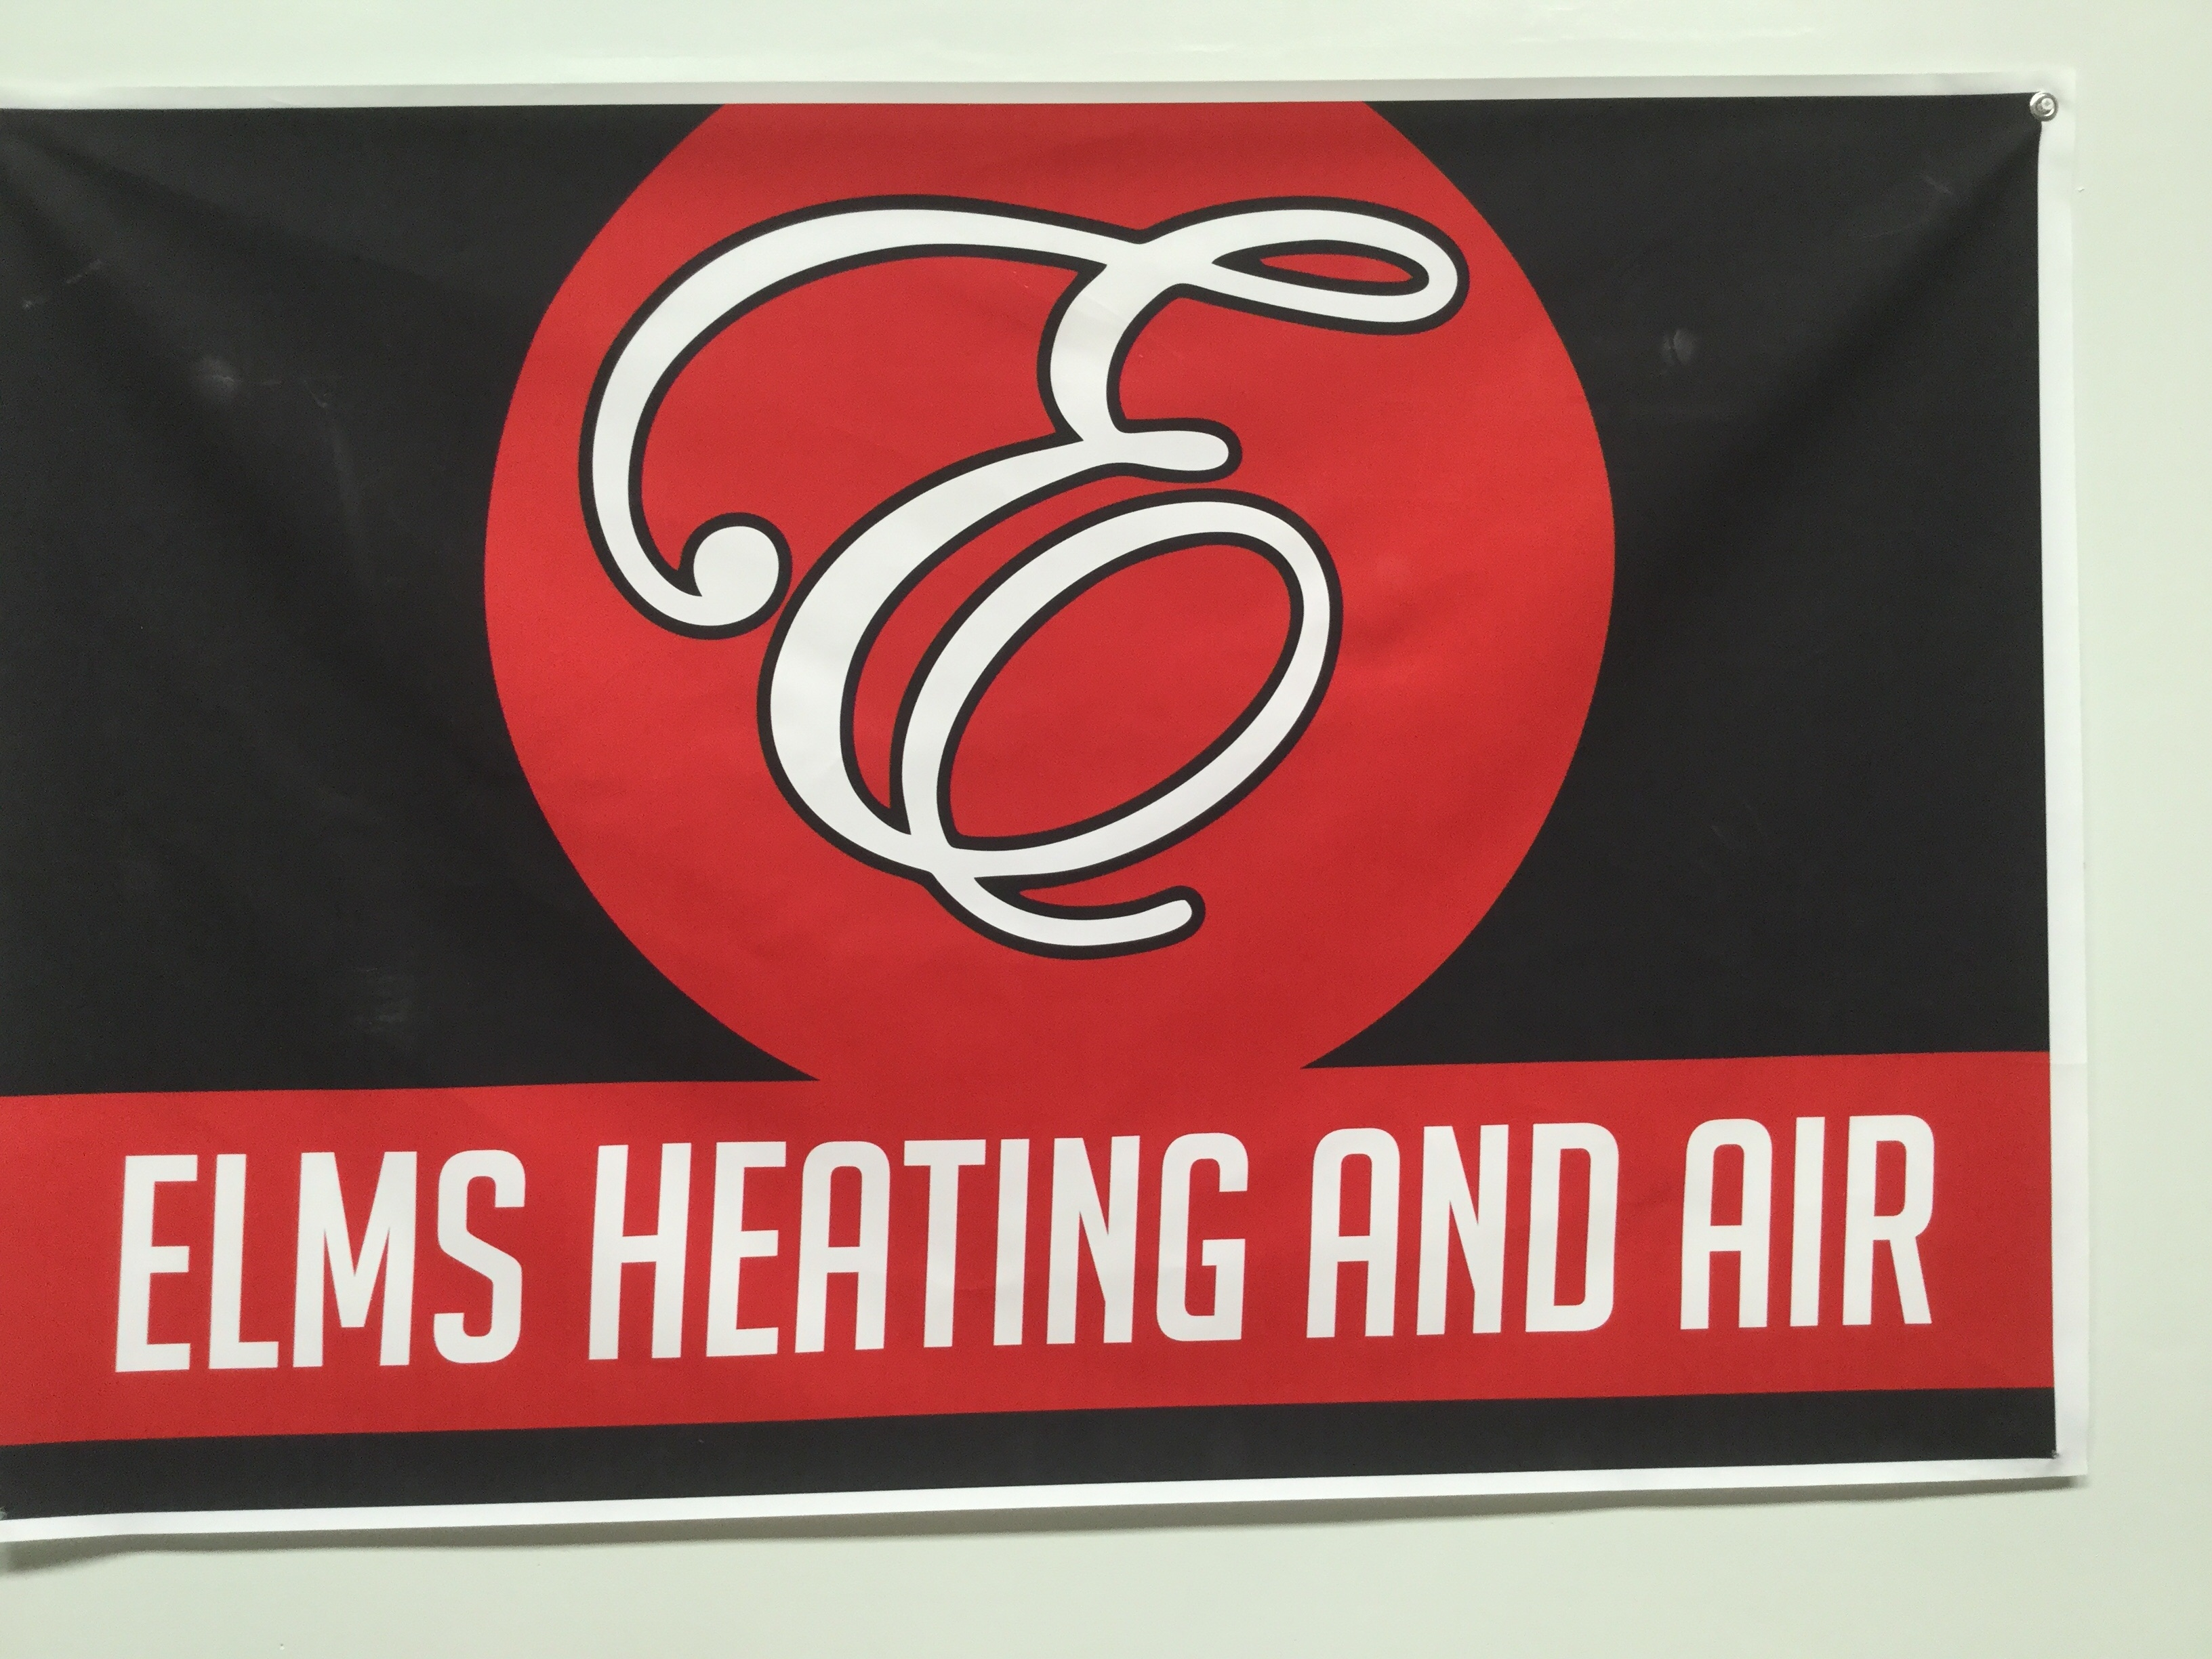 Elms Heating and Air